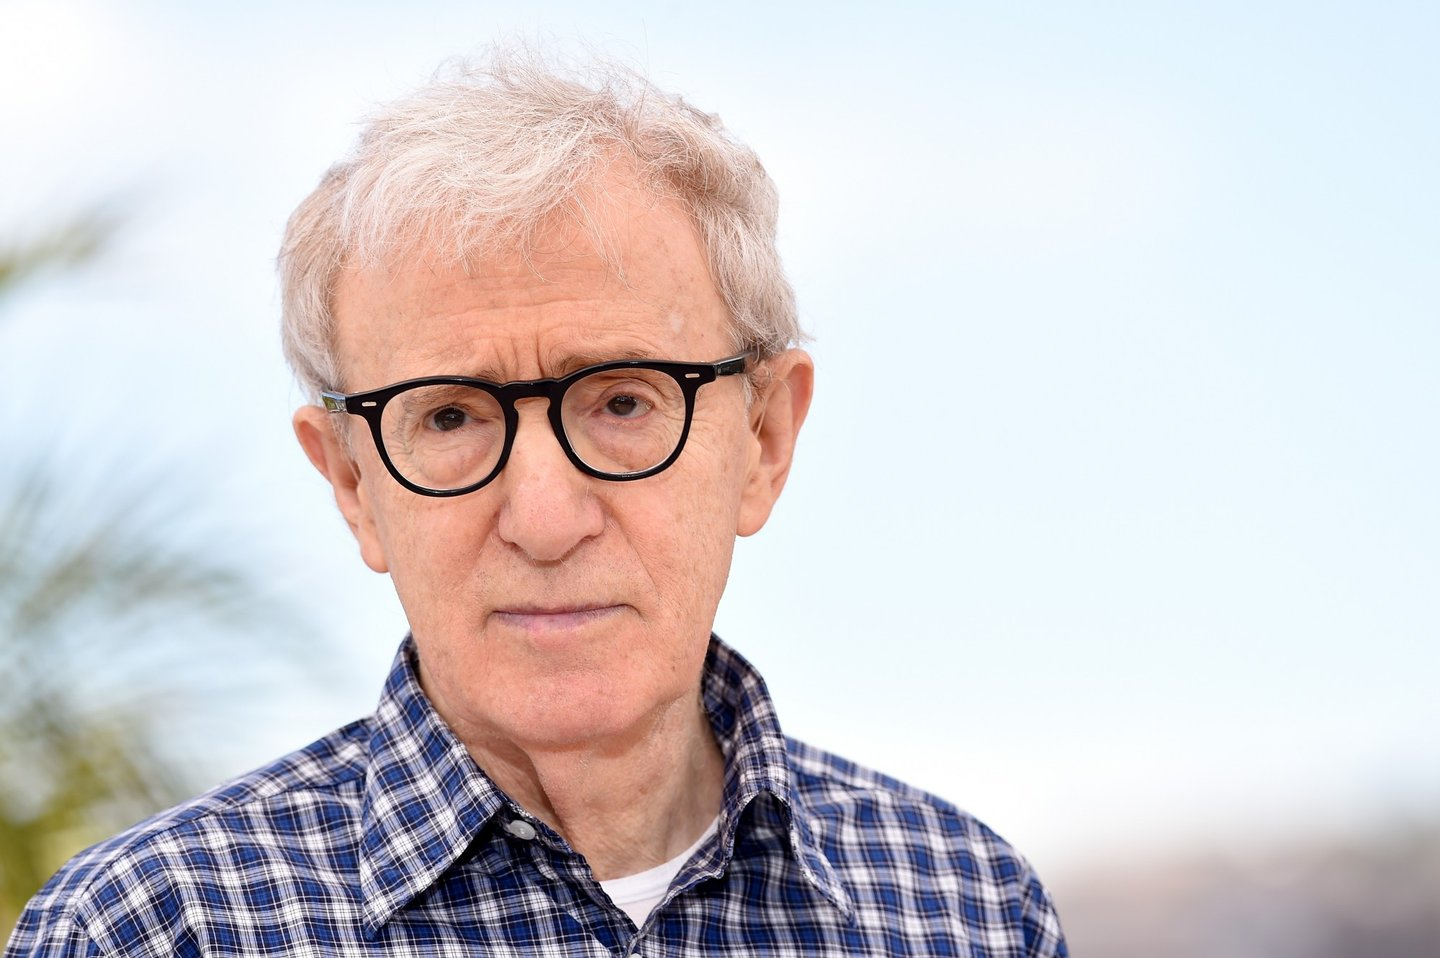 """CANNES, FRANCE - MAY 15: Director Woody Allen attends a photocall for """"Irrational Man"""" during the 68th annual Cannes Film Festival on May 15, 2015 in Cannes, France. (Photo by Ben A. Pruchnie/Getty Images)"""